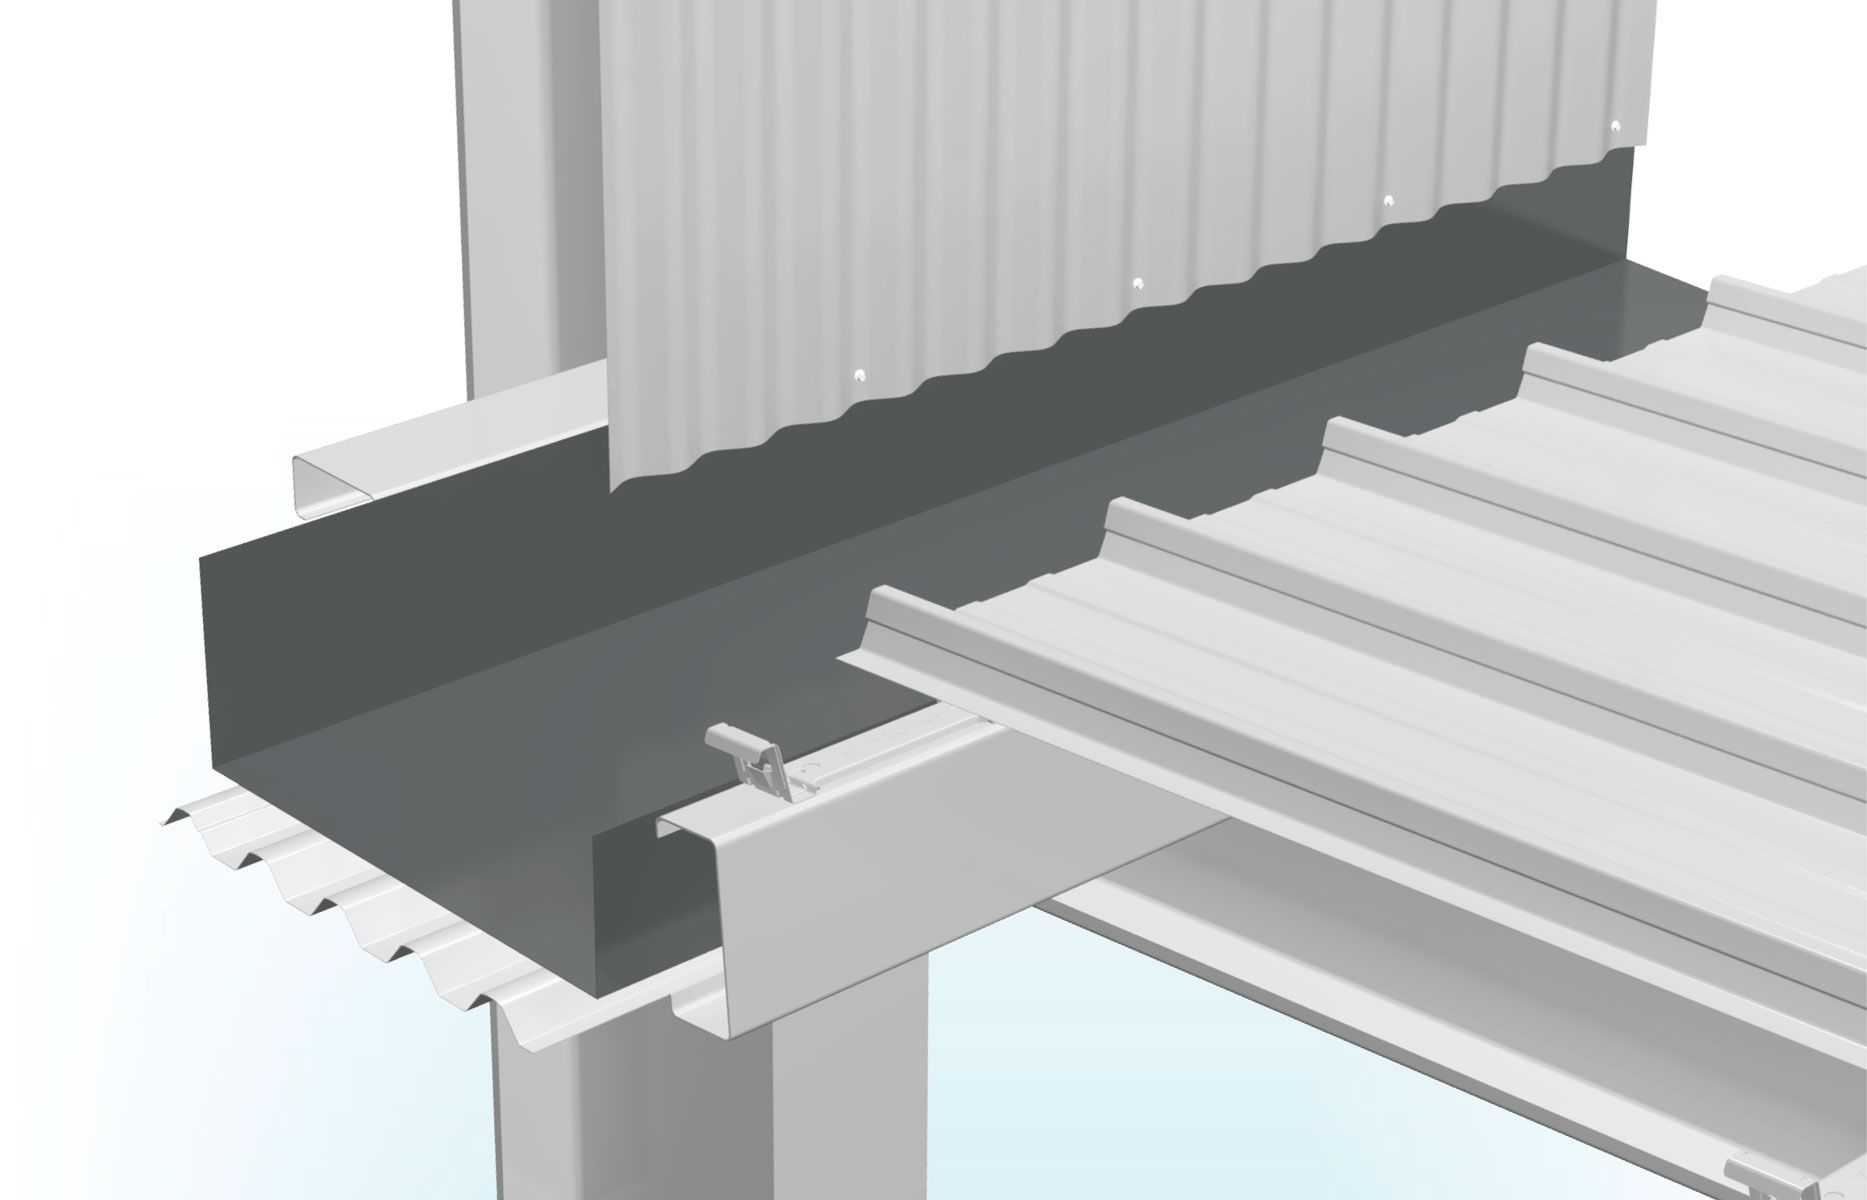 Flashings Stratco Box Gutter Flat Roof Repair Roofing